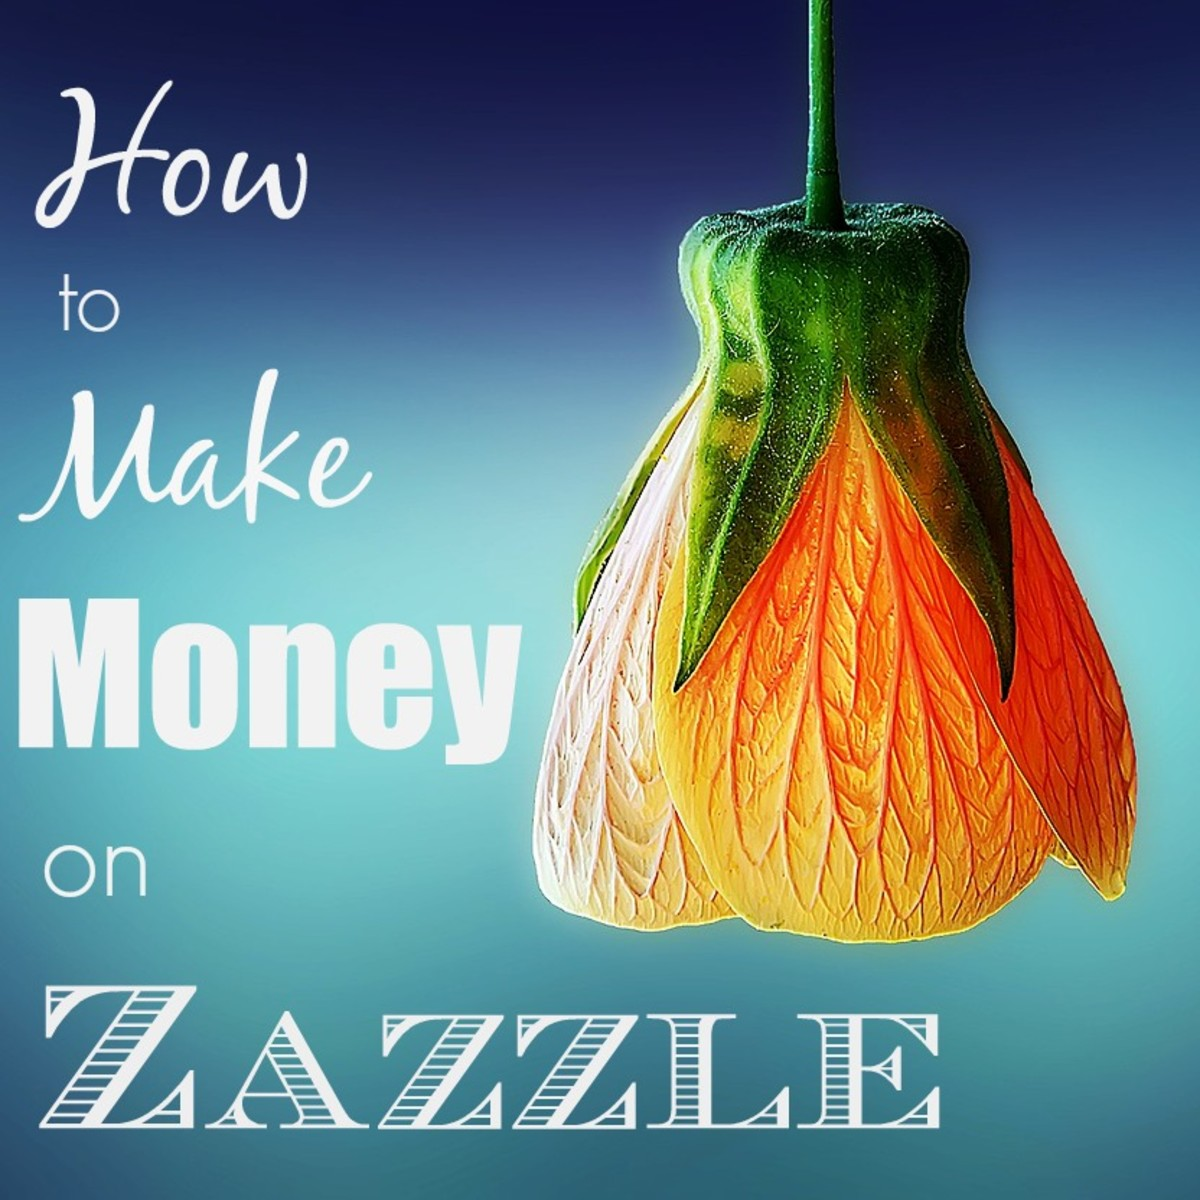 How to Make Money on Zazzle: 12 Easy Tips